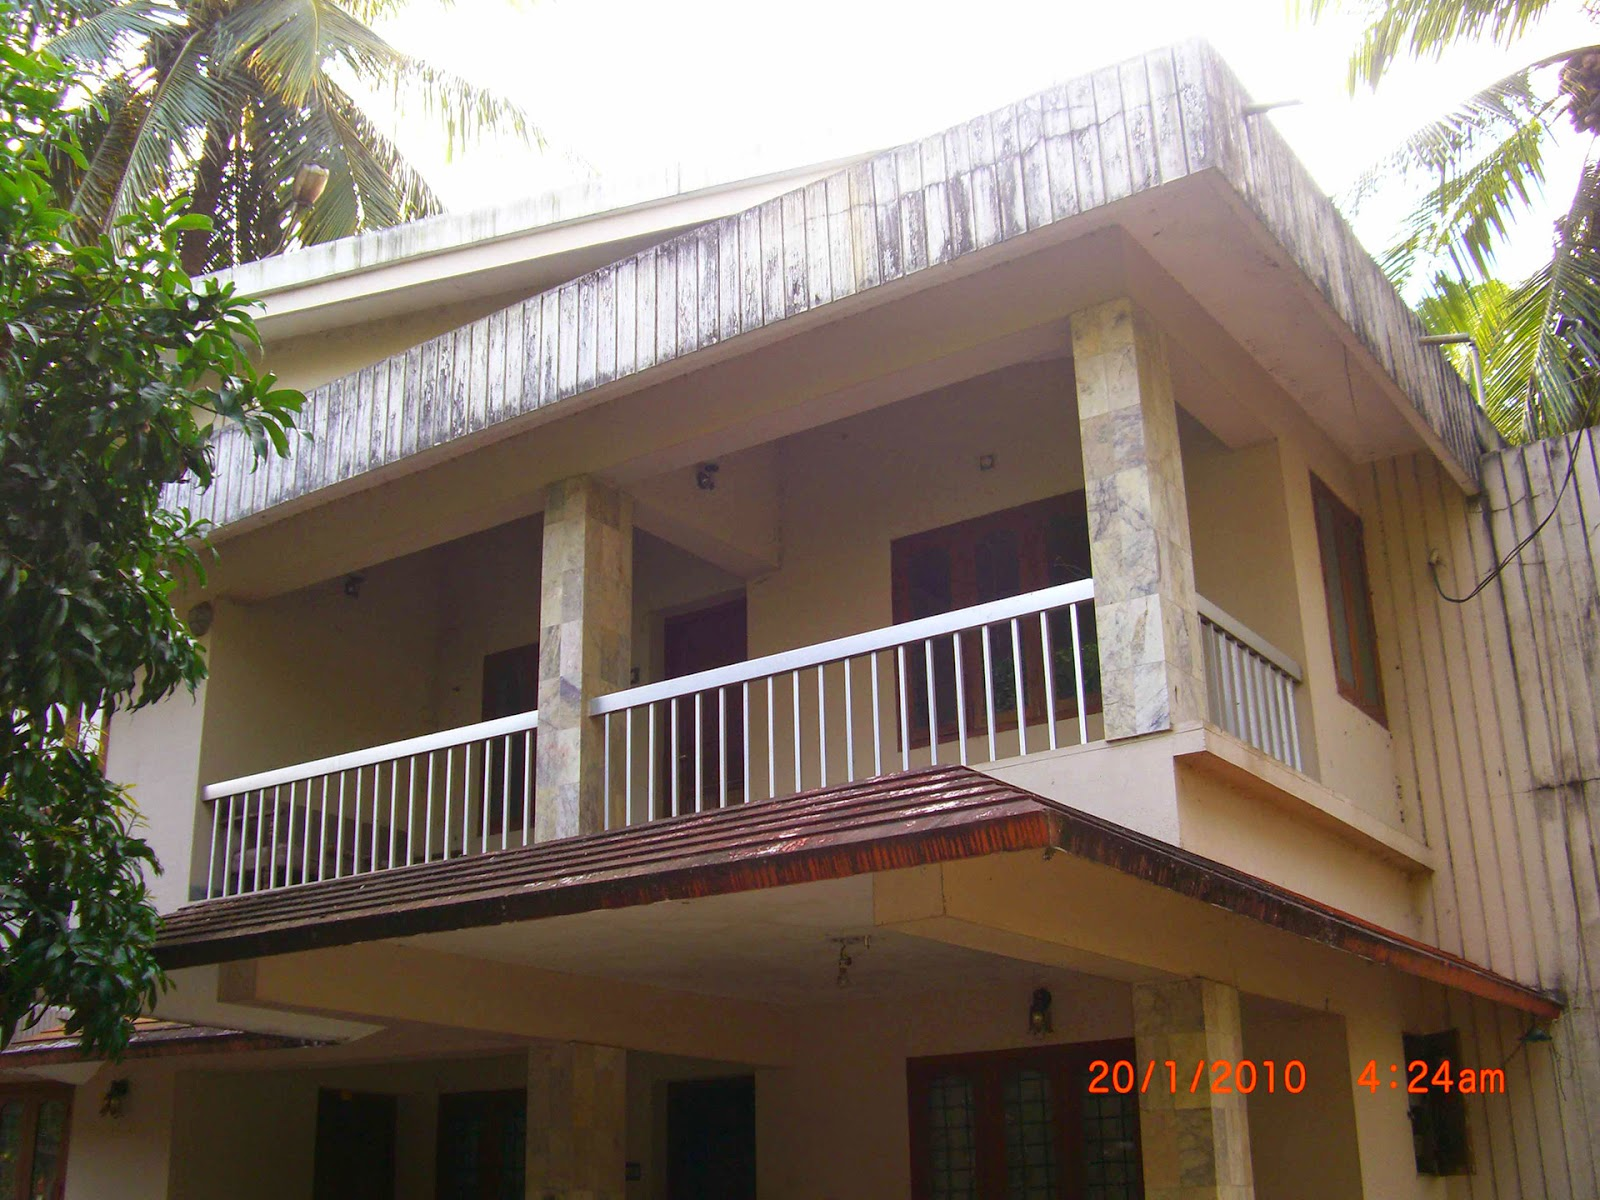 House renovation idea kerala home design and floor plans for Renovation ideas for small homes in india